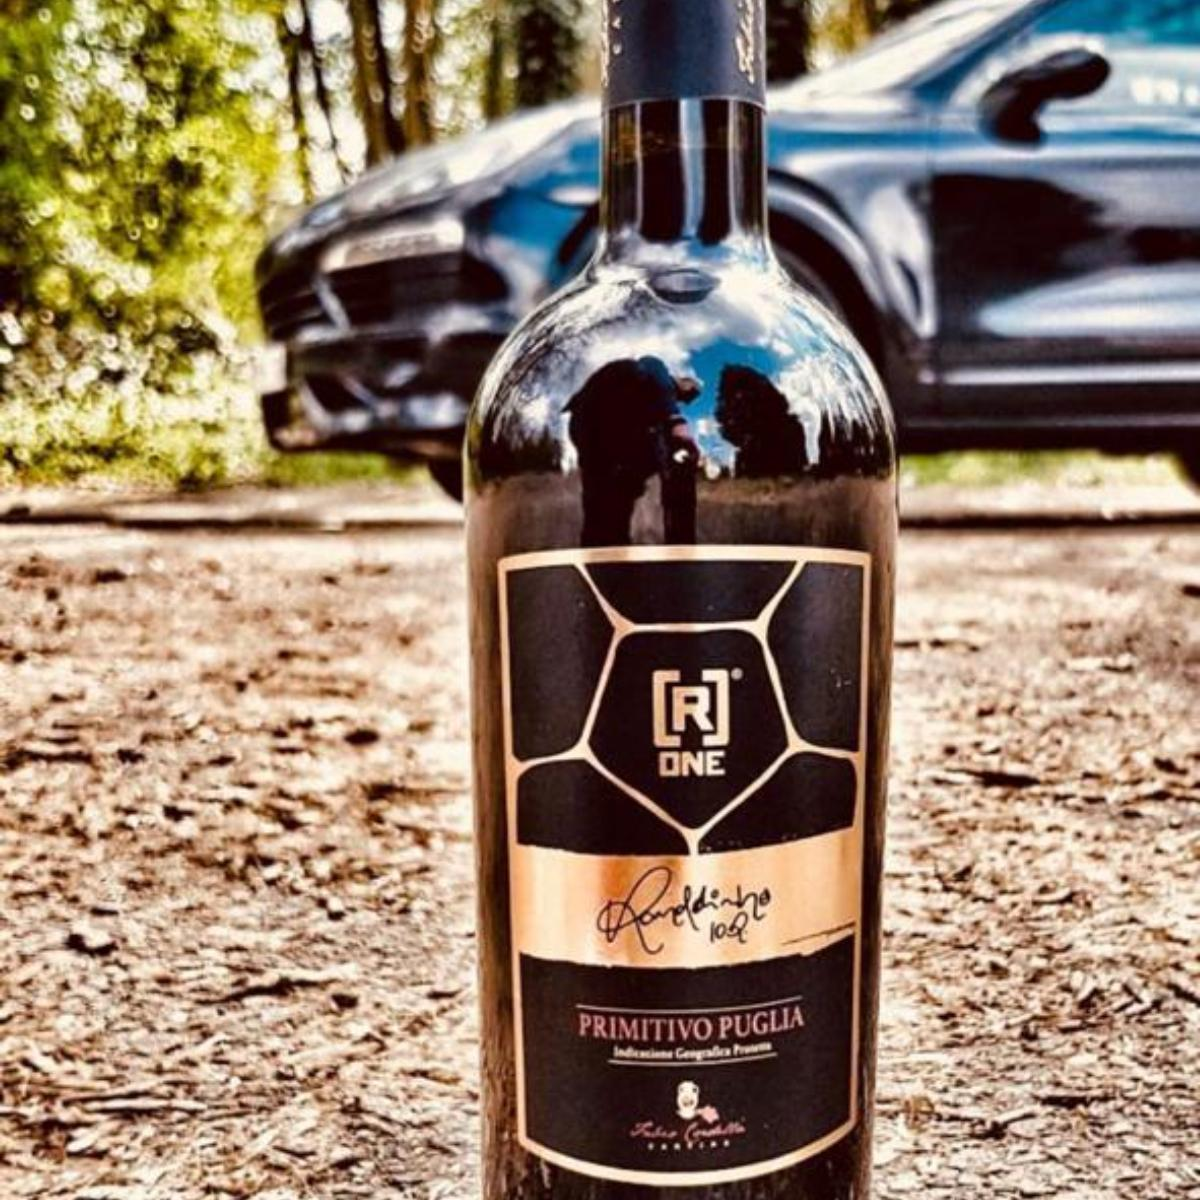 The wine that Ronaldinho plans to promote during his Malta visit